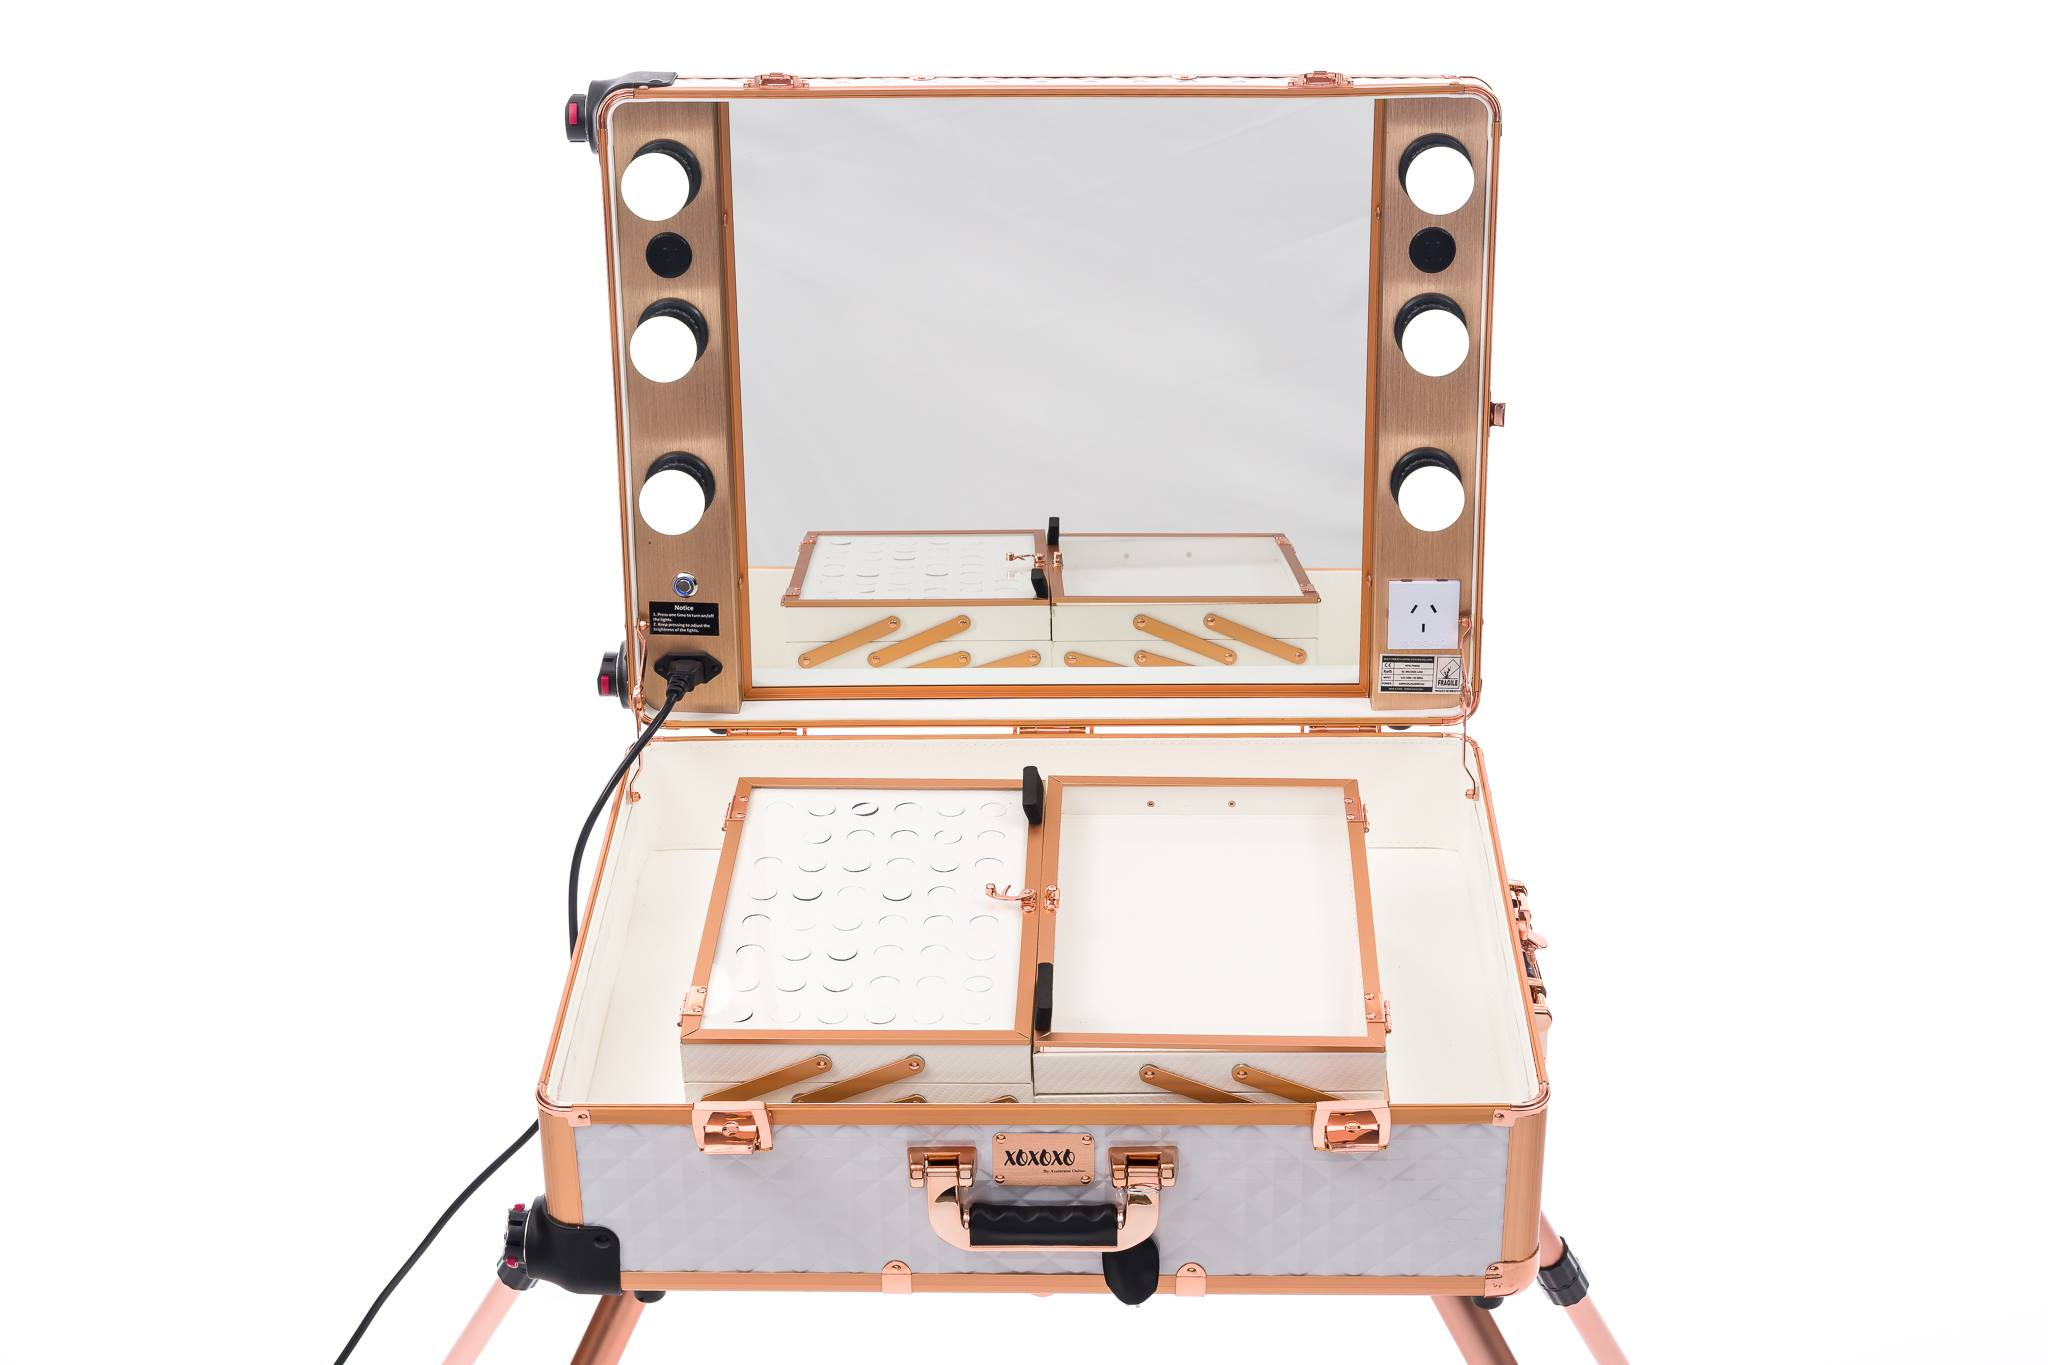 Makeup Station Large With Bluetooth Speakers, Usb and Power Point-XOXOXO WHITE DIAMOND & ROSE GOLD